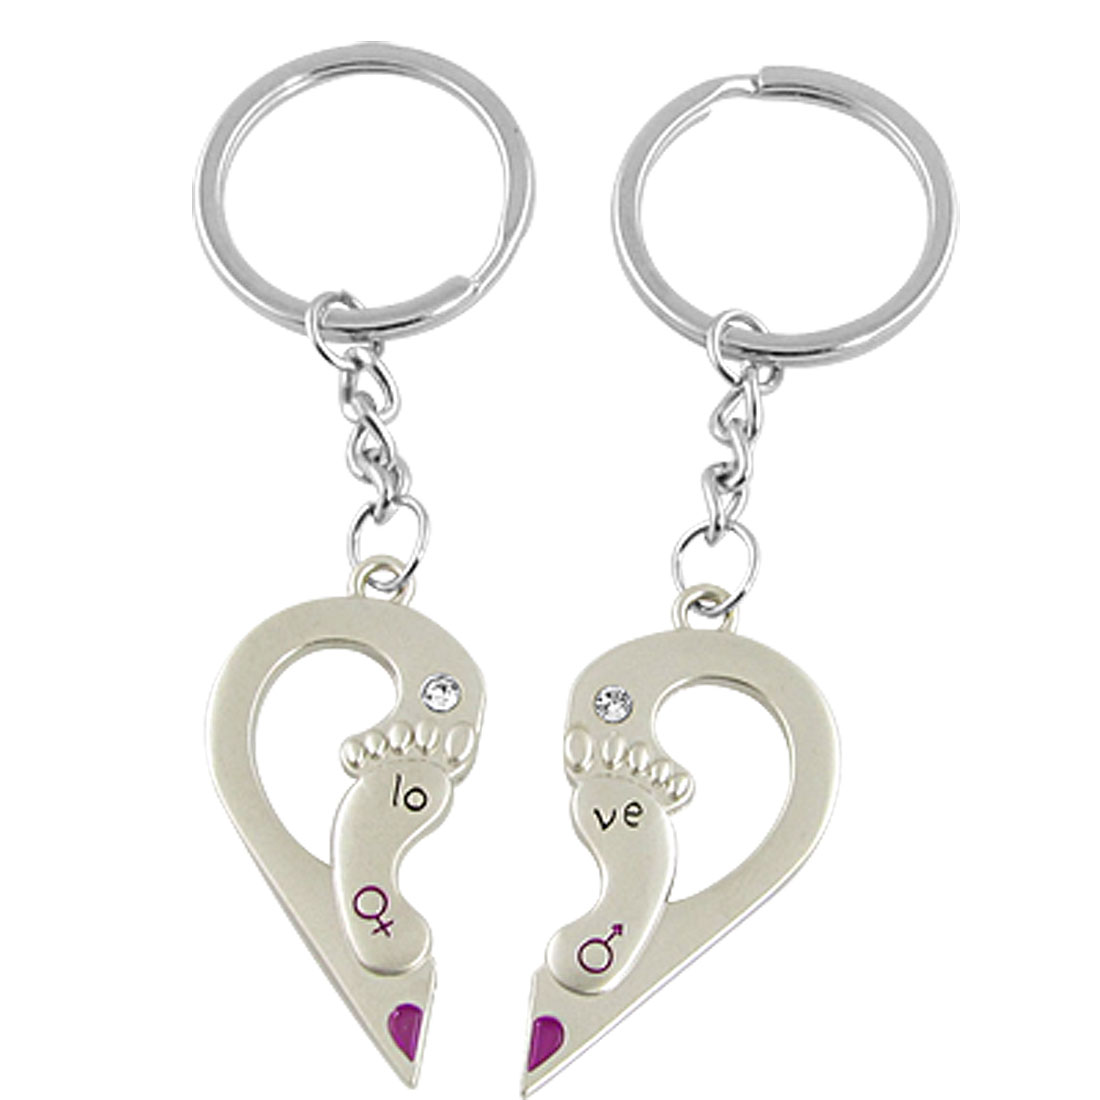 Pair Couple Keychain Keyring Half-heart Foot Pendant